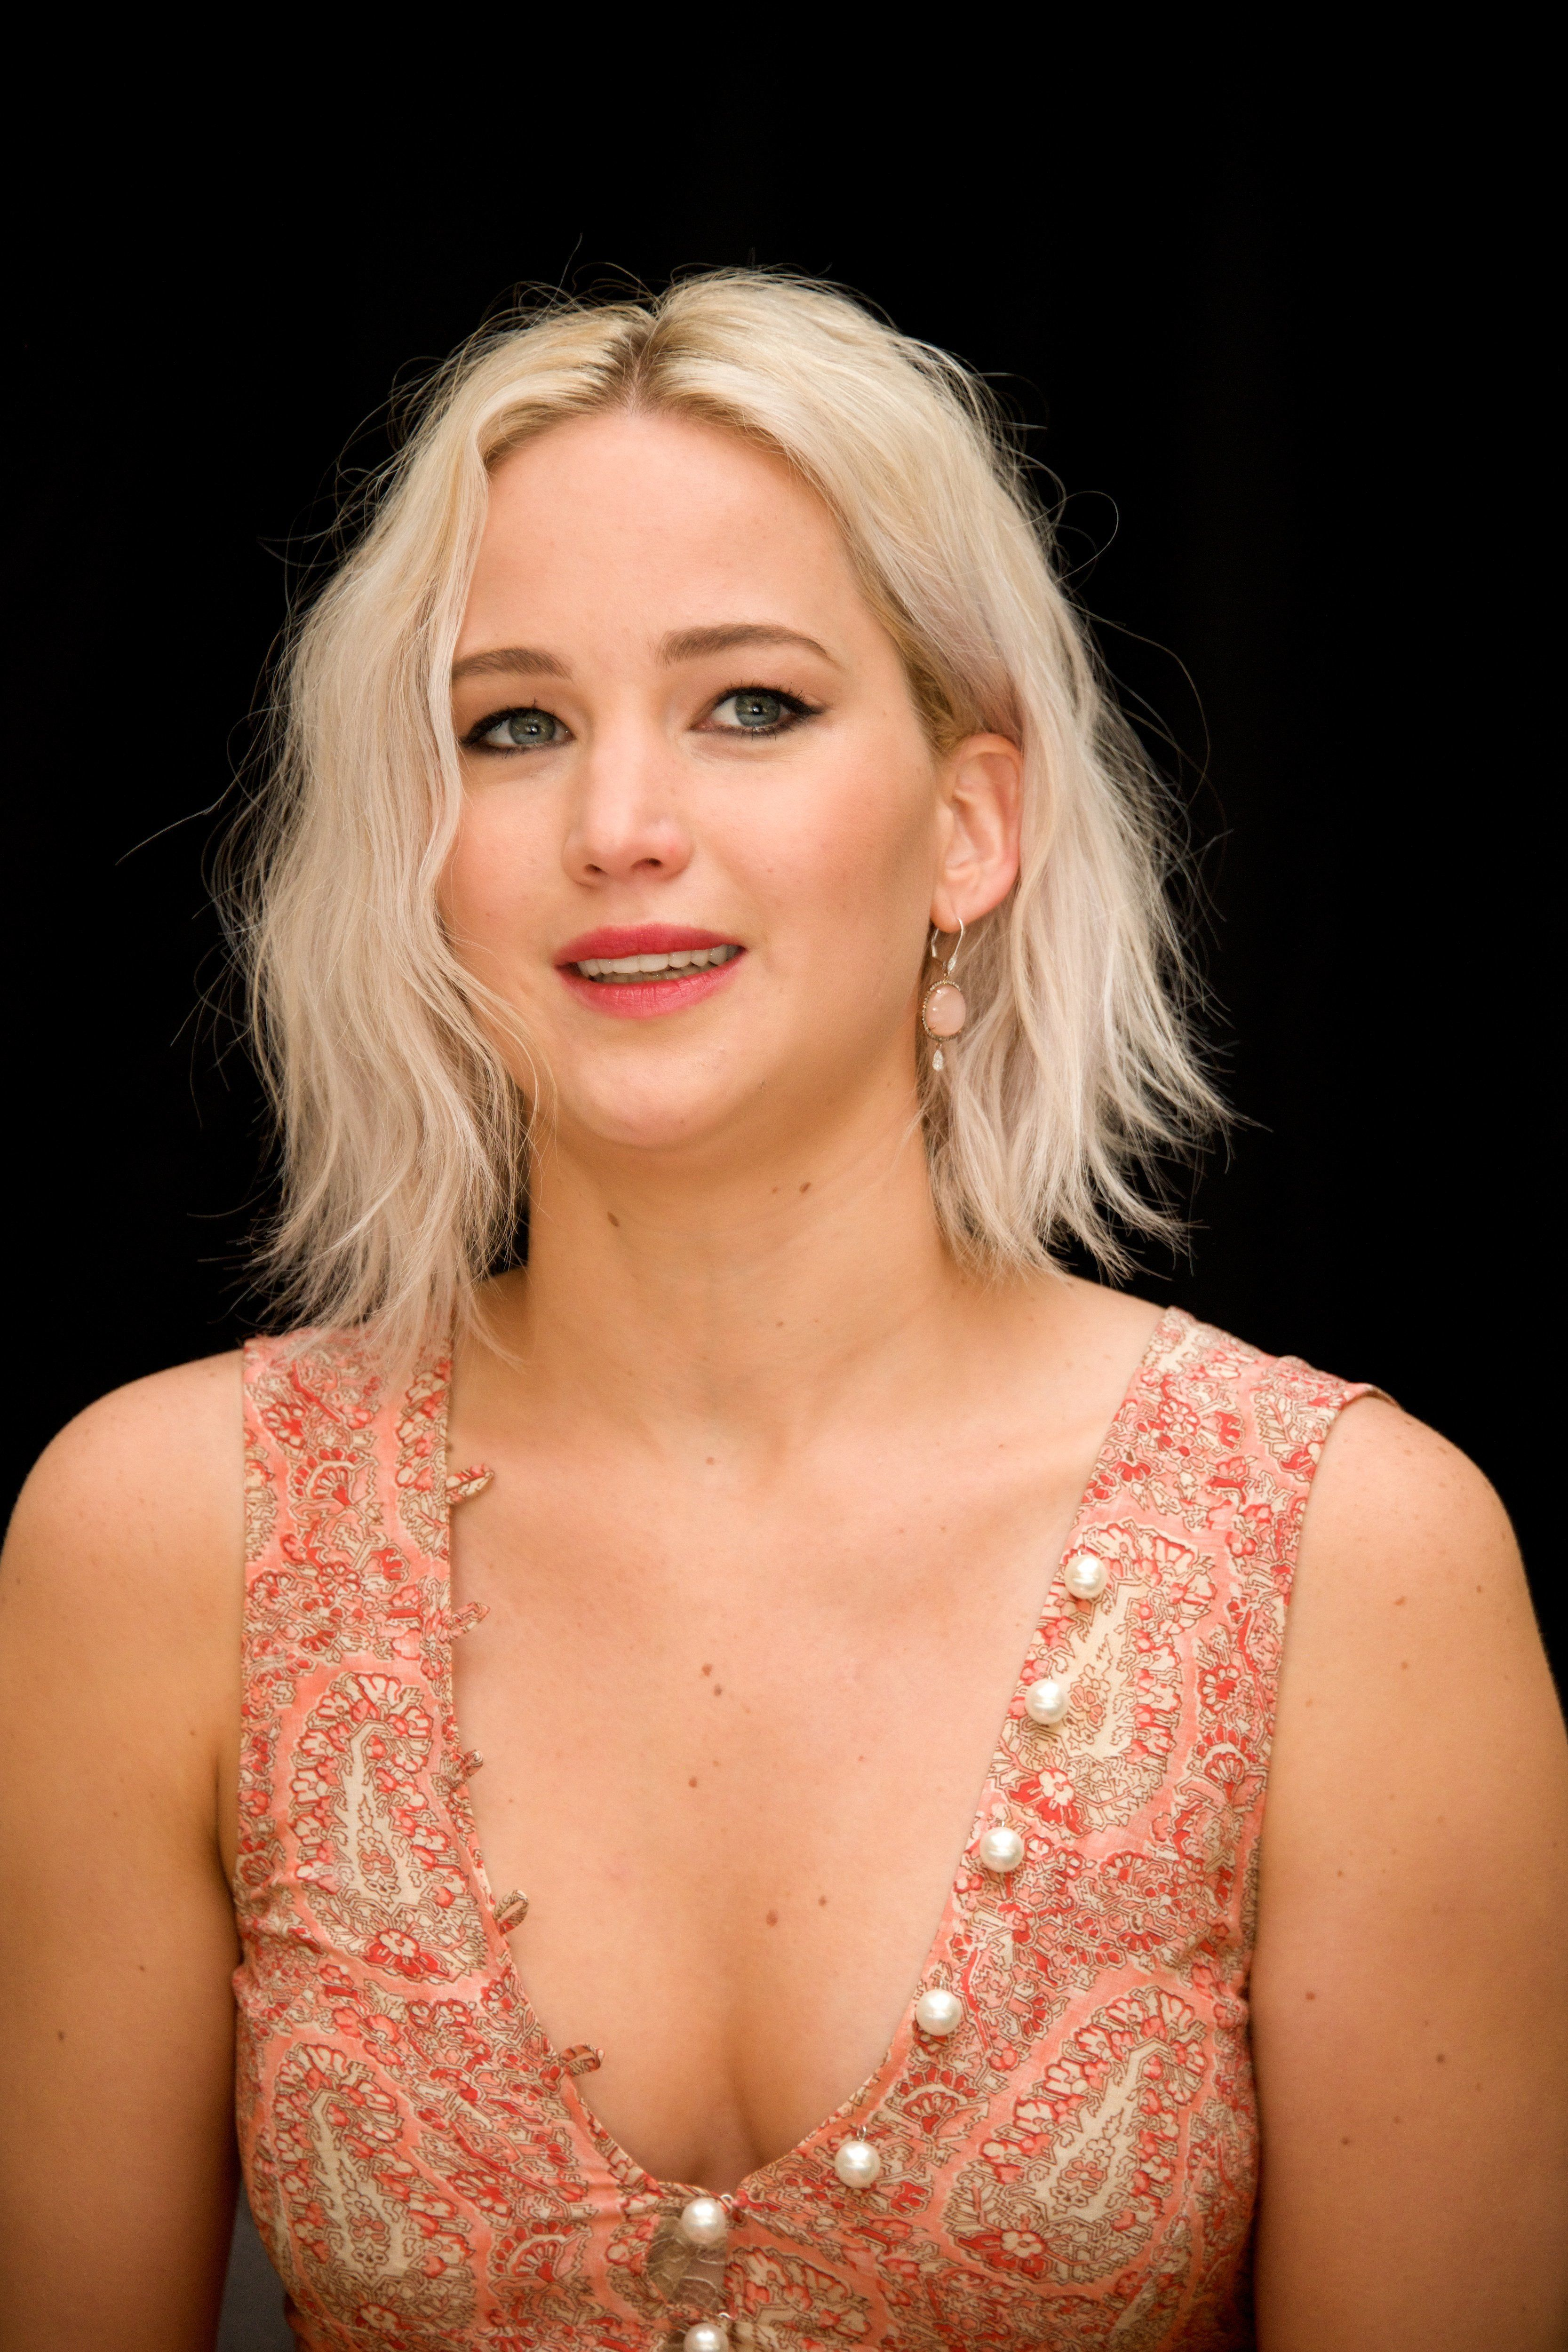 LONDON, ENGLAND - MAY 08:  Jennifer Lawrence at the 'X-Men: Apocalypse' Press Conference at the Claridges Hotel on May 8, 2016 in London, England.  (Photo by Vera Anderson/WireImage)